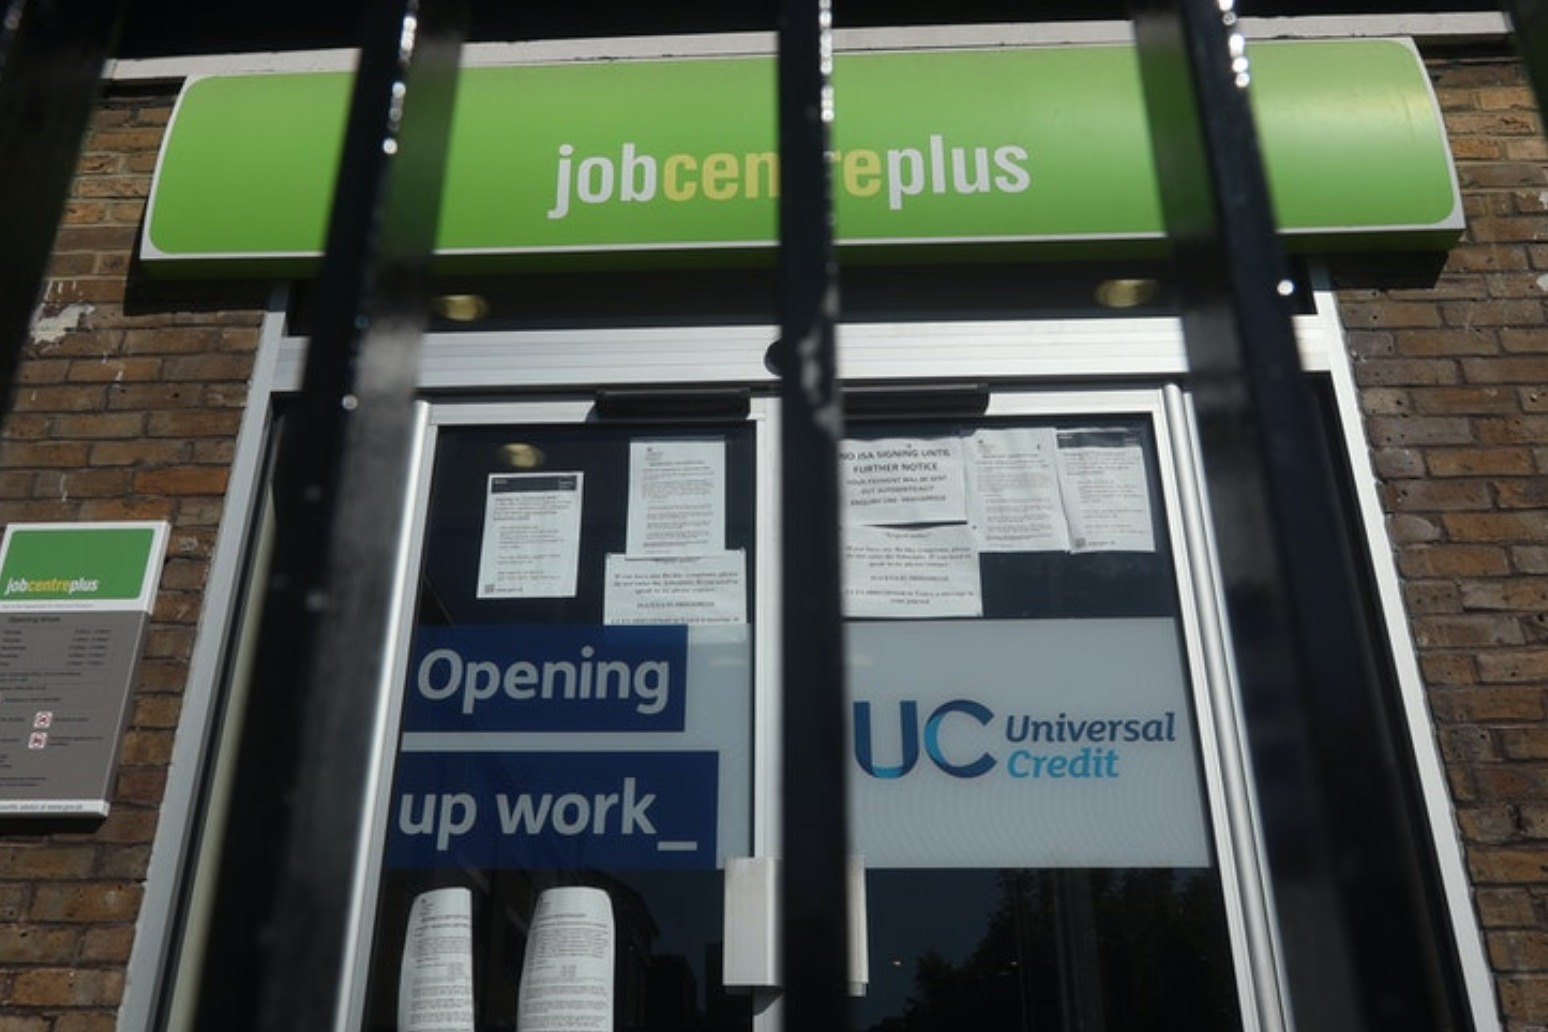 Unemployment rises amid pandemic - Scotland